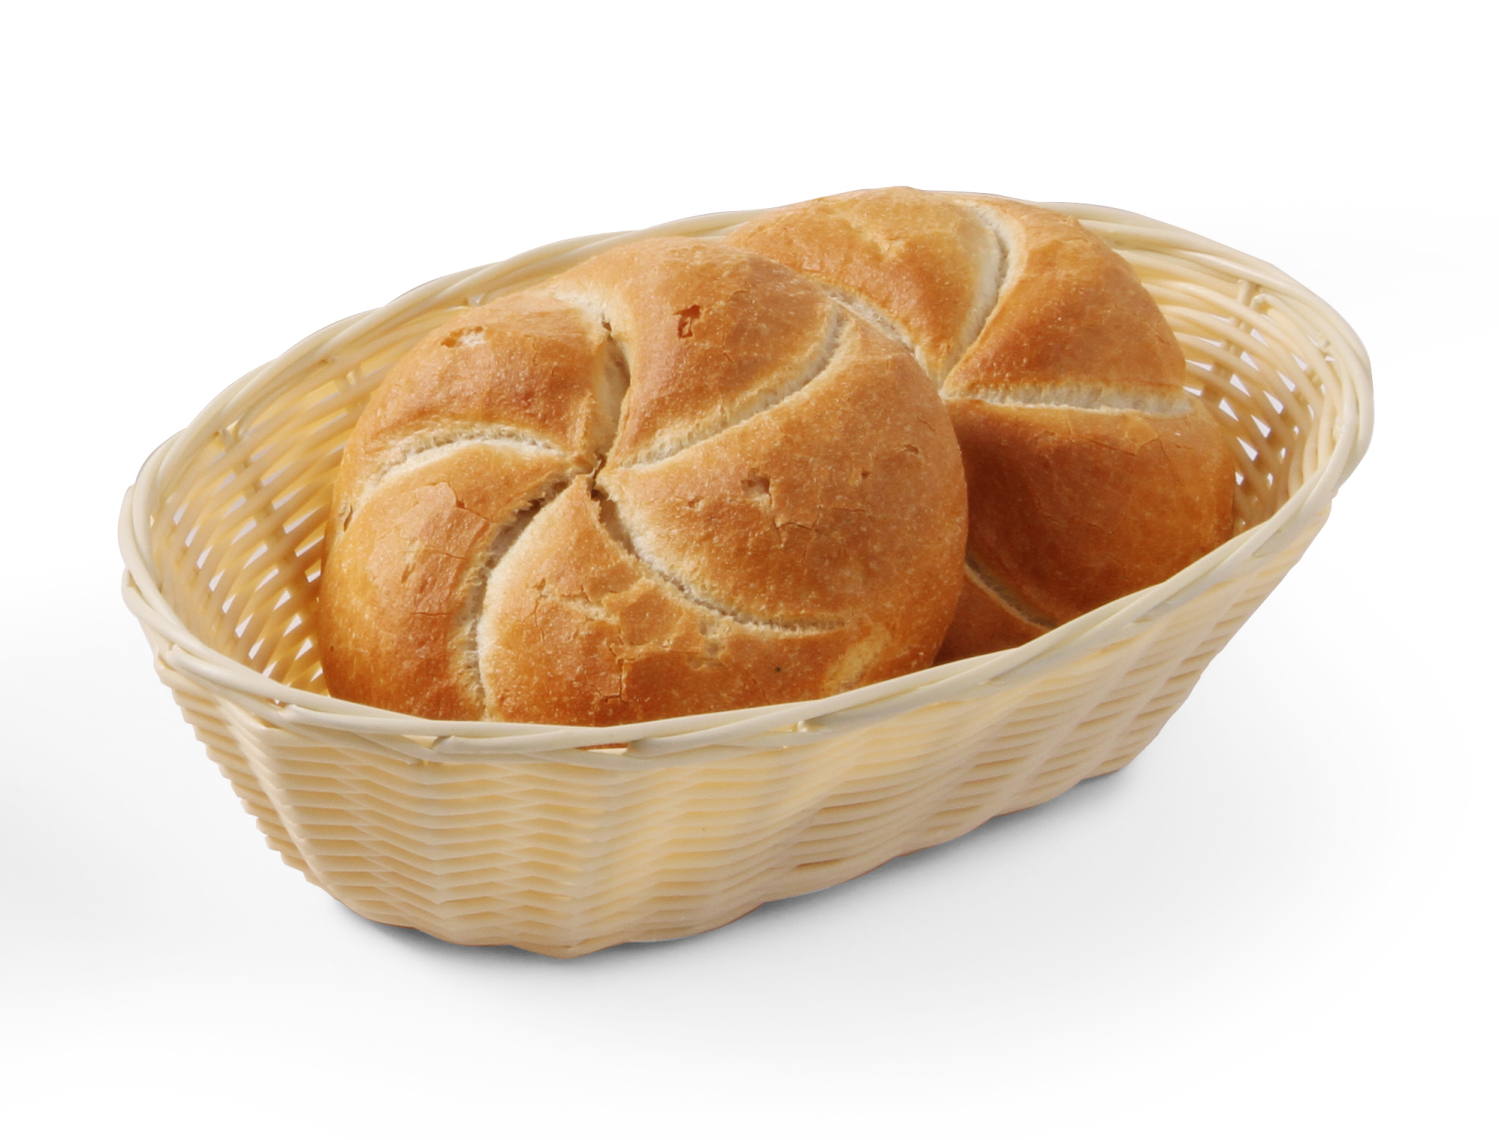 426500_with_bread.jpg